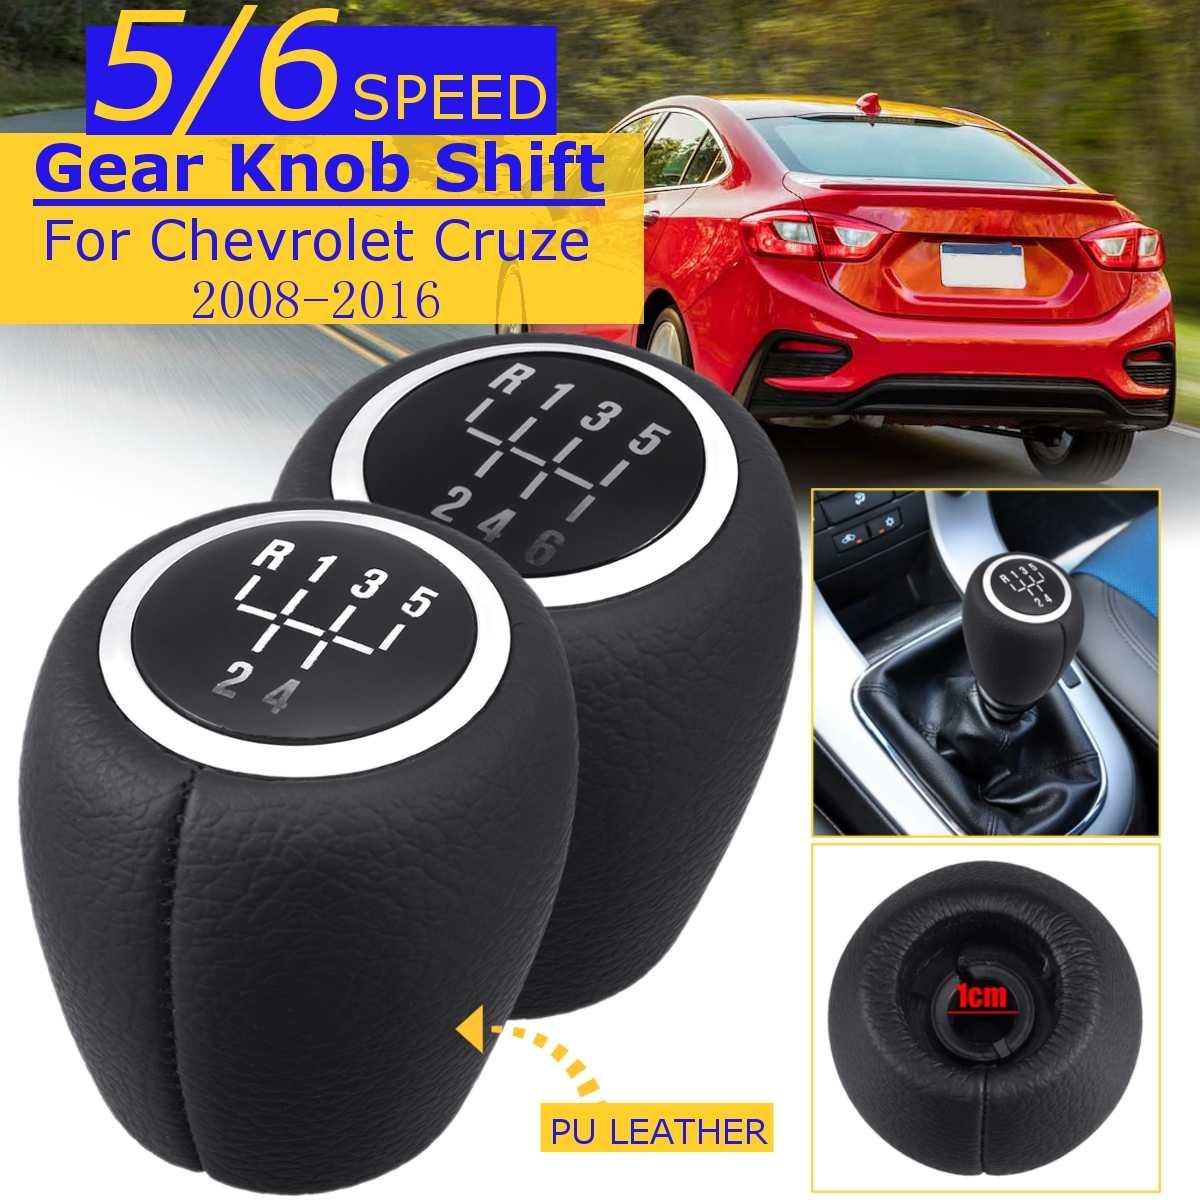 5/6 Speed Pu Leather MT Gear Shift Knob For <font><b>Chevrolet</b></font> <font><b>Cruze</b></font> 2008 2009 2010 <font><b>2011</b></font> 2012 2013 2014 <font><b>2015</b></font> 2016 Car Gear Shift Knob image